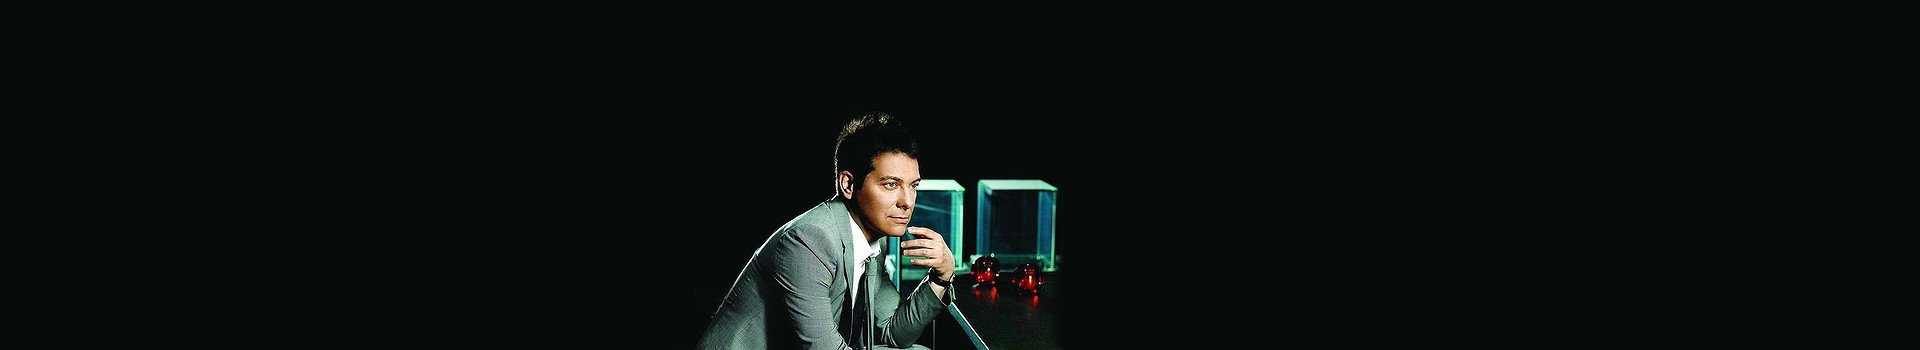 An Evening with Michael Feinstein and his Big Band banner image